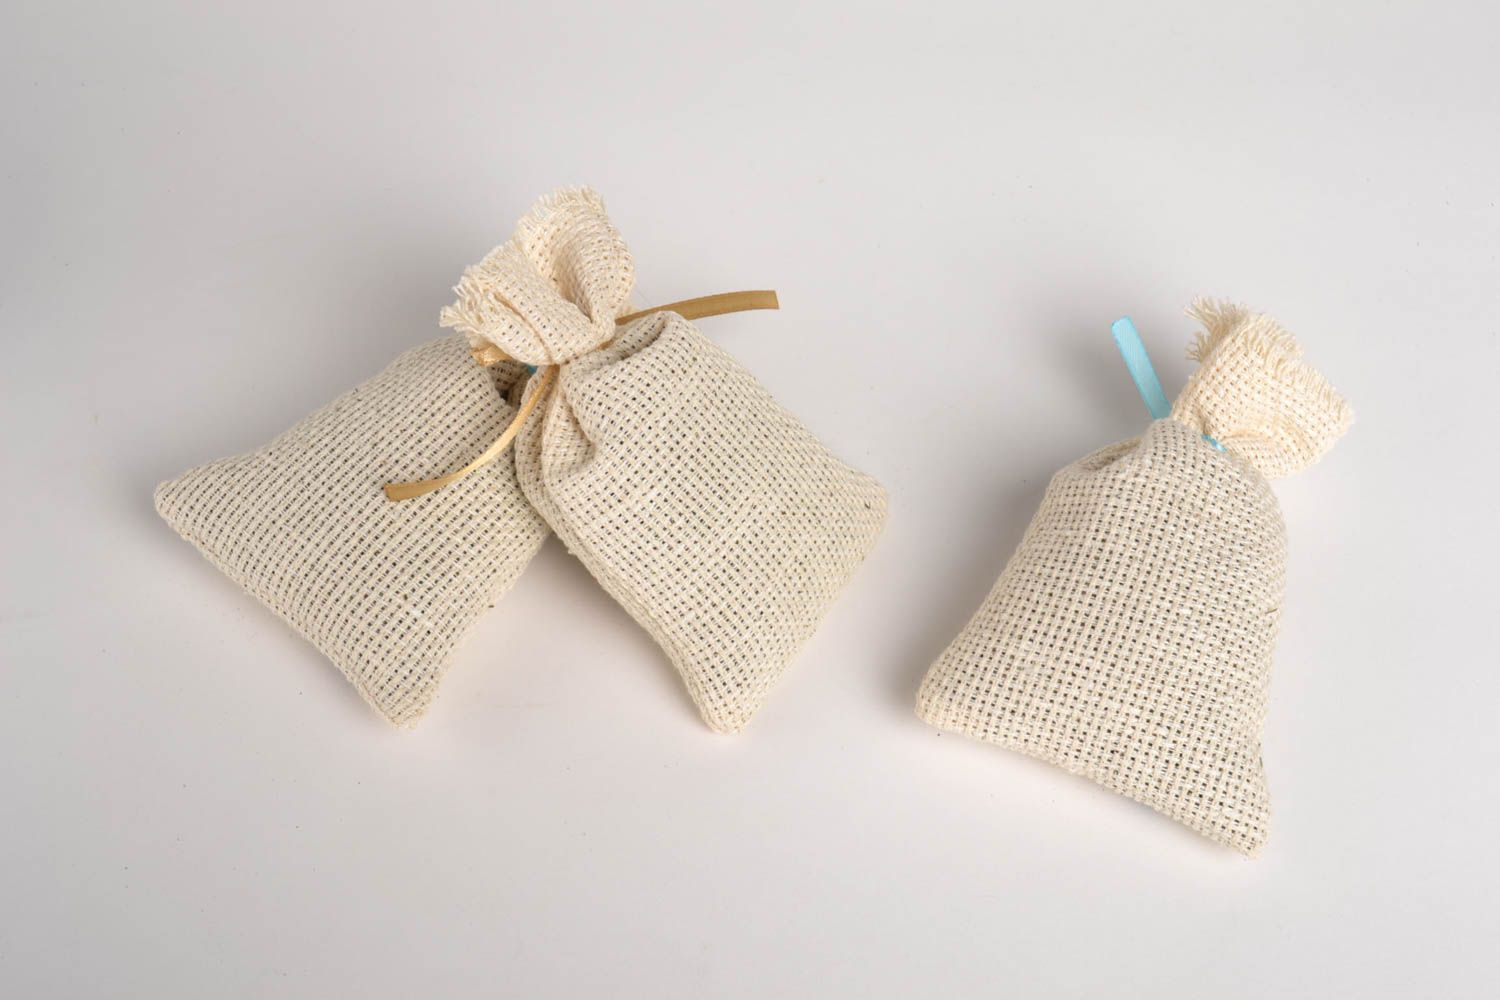 Handmade decorative sachet bag scented sachet bags 3 pieces small gifts photo 2